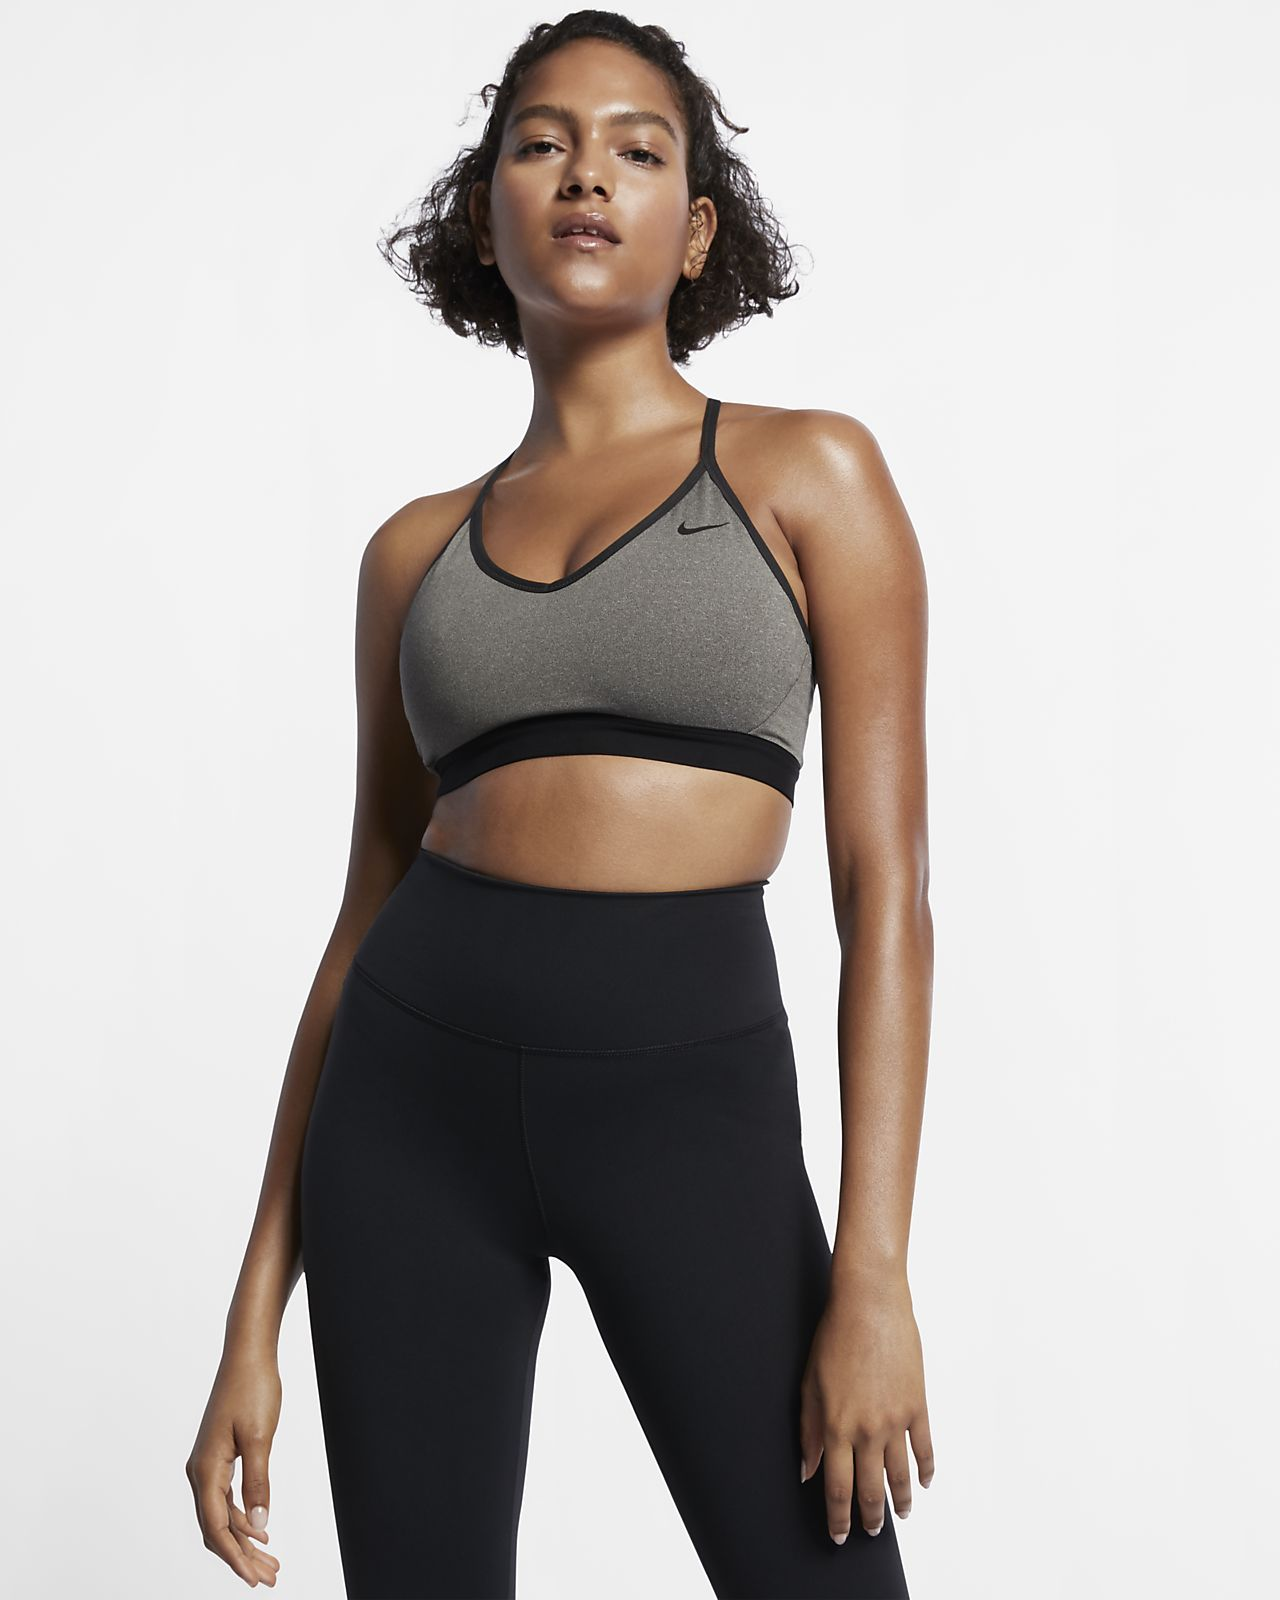 Nike Indy Women's Light-Support Sports Bra